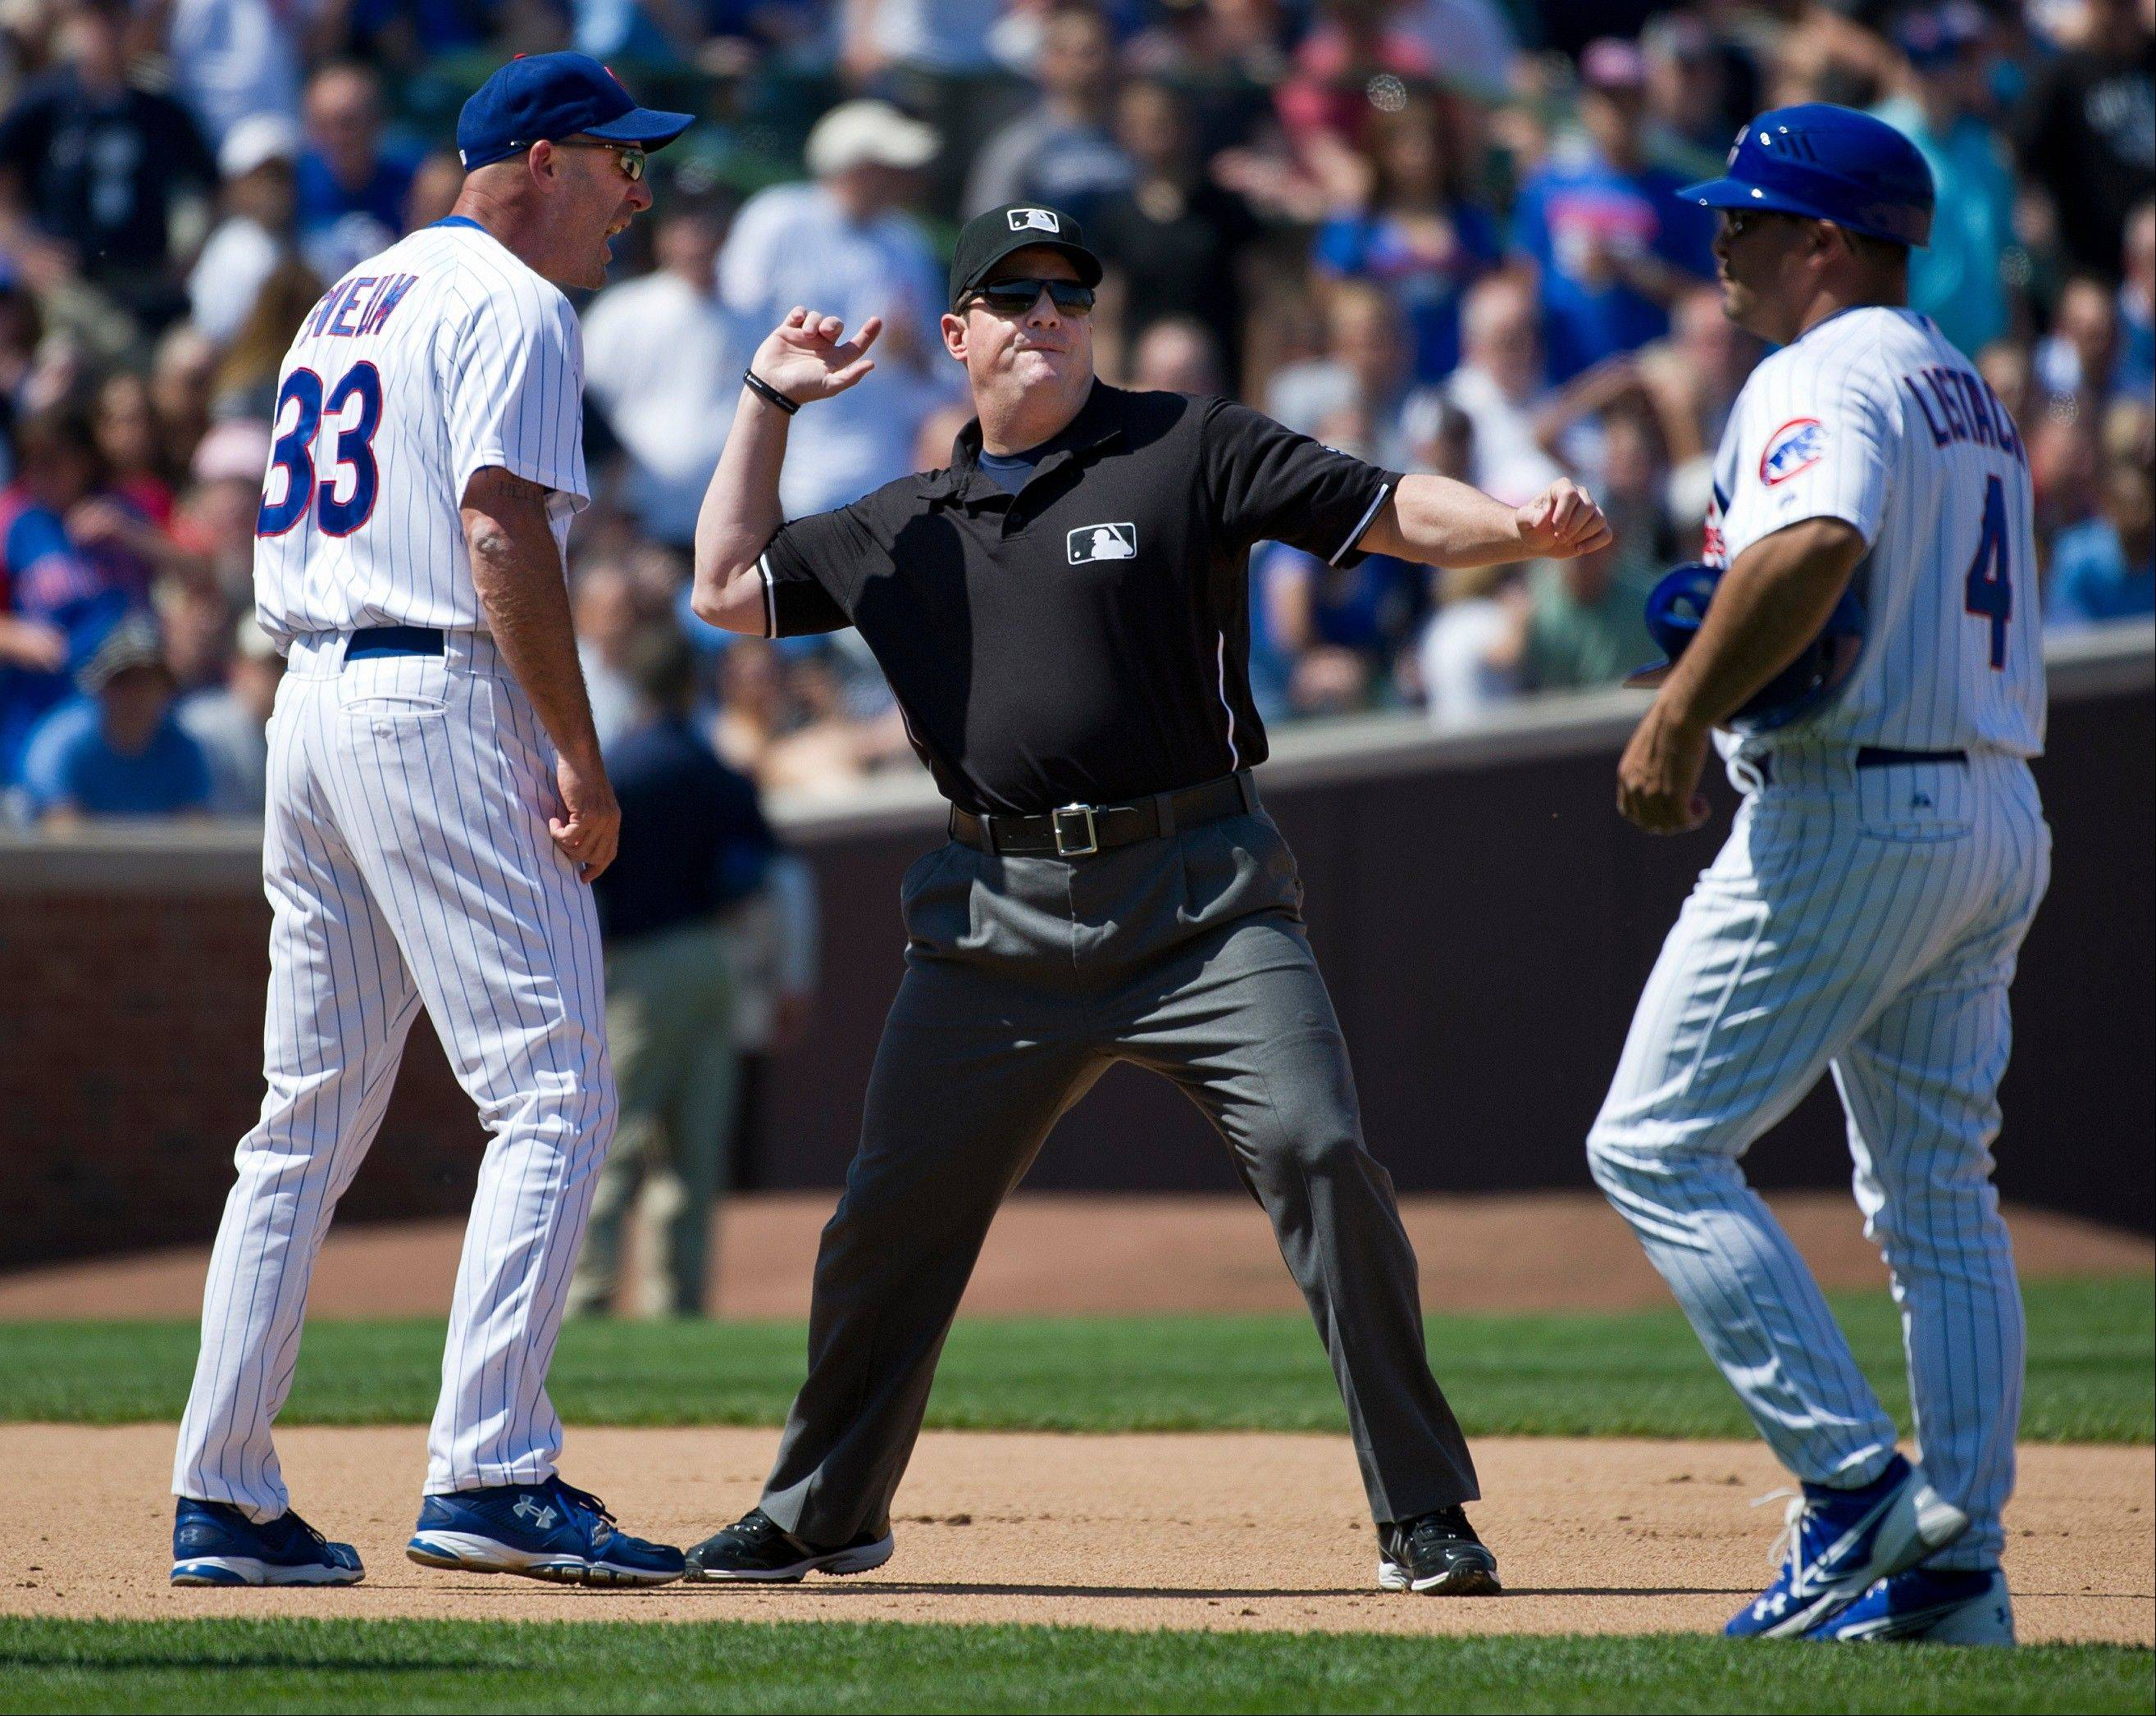 Second base umpire Eric Cooper, center, ejects Chicago Cubs manager Dale Sveum, left, after Sveum came out to argue a call during the fifth inning of an imterleague baseball game against the Chicago White Sox, Friday, May 18, 2012 in Chicago. Cubs third base coach Pat Listach watches the argument.